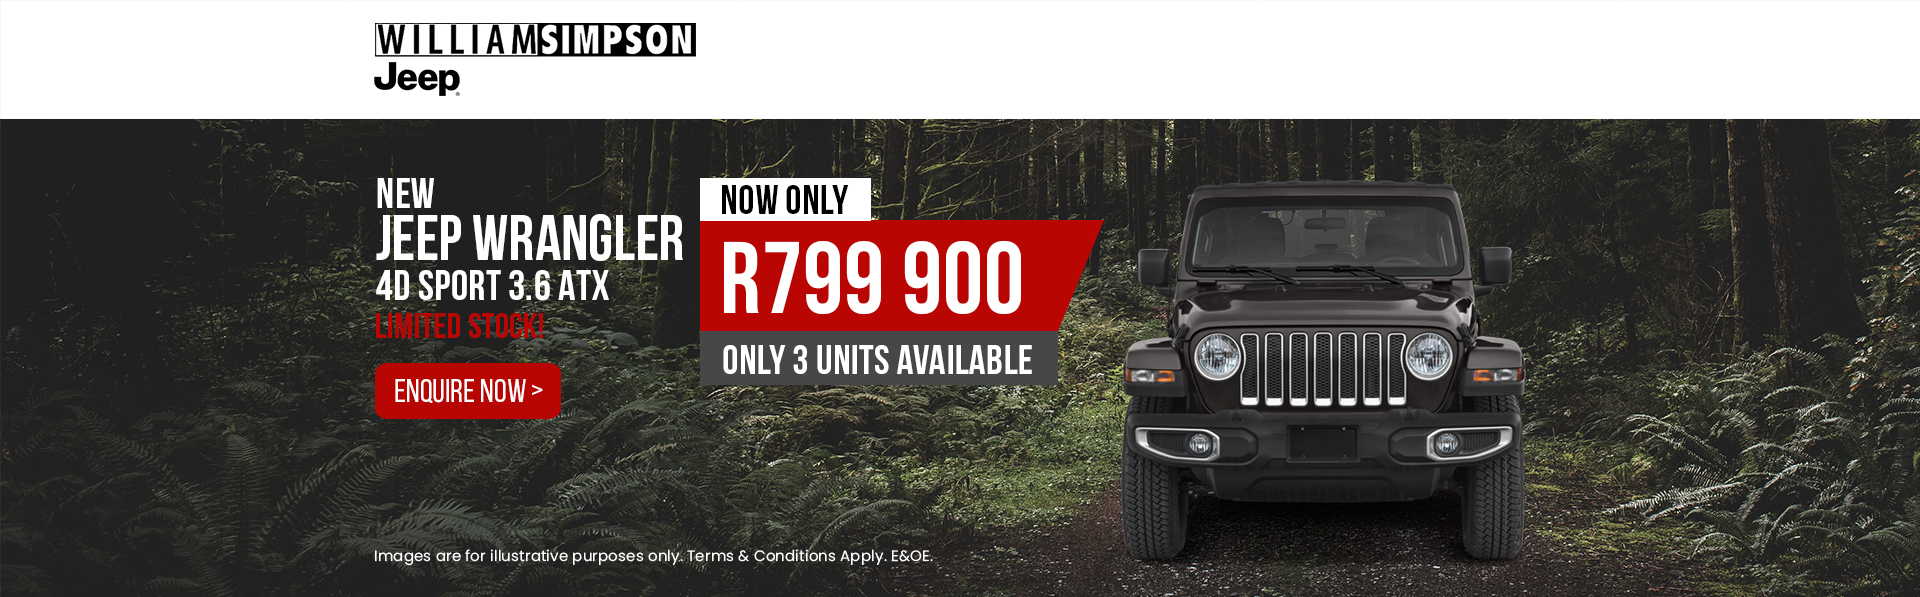 jeep-wrangler---limited-stock